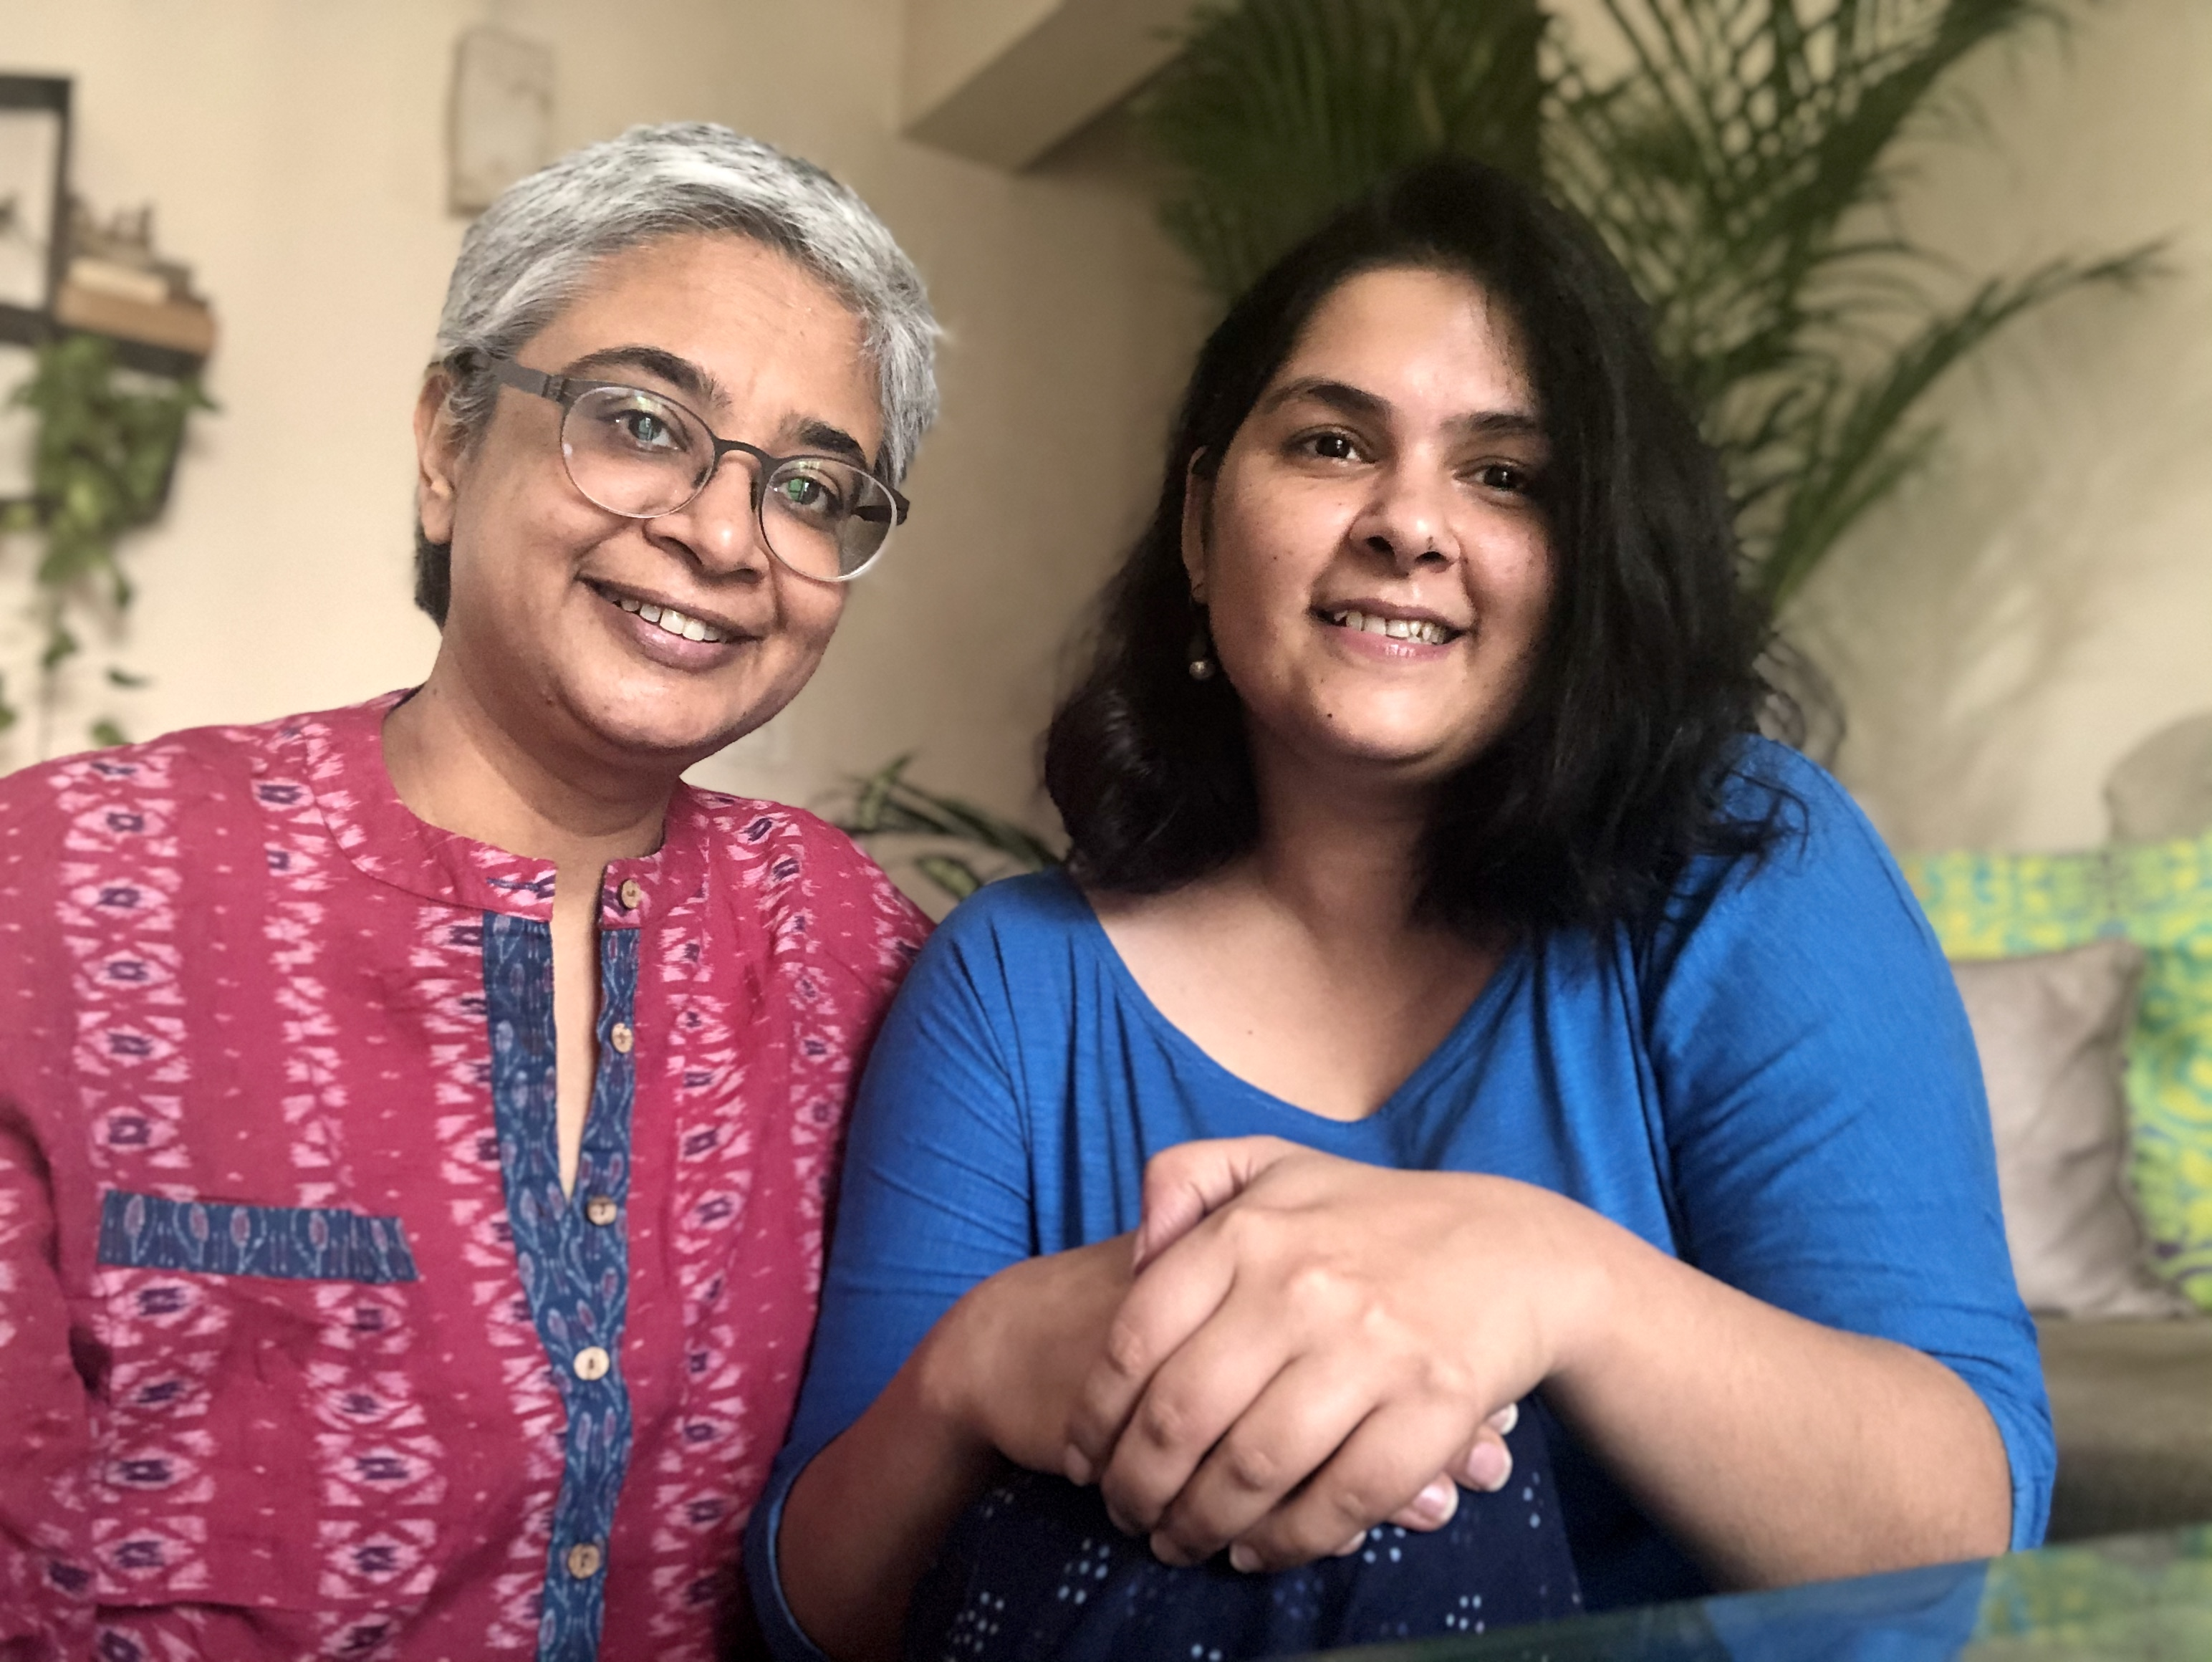 Kavita Arora (left) and Ankita Khanna (right) petitioned a Delhi court in October 2020 for the constitutional right to marry—arguing that without official recognition, they are  strangers in law.